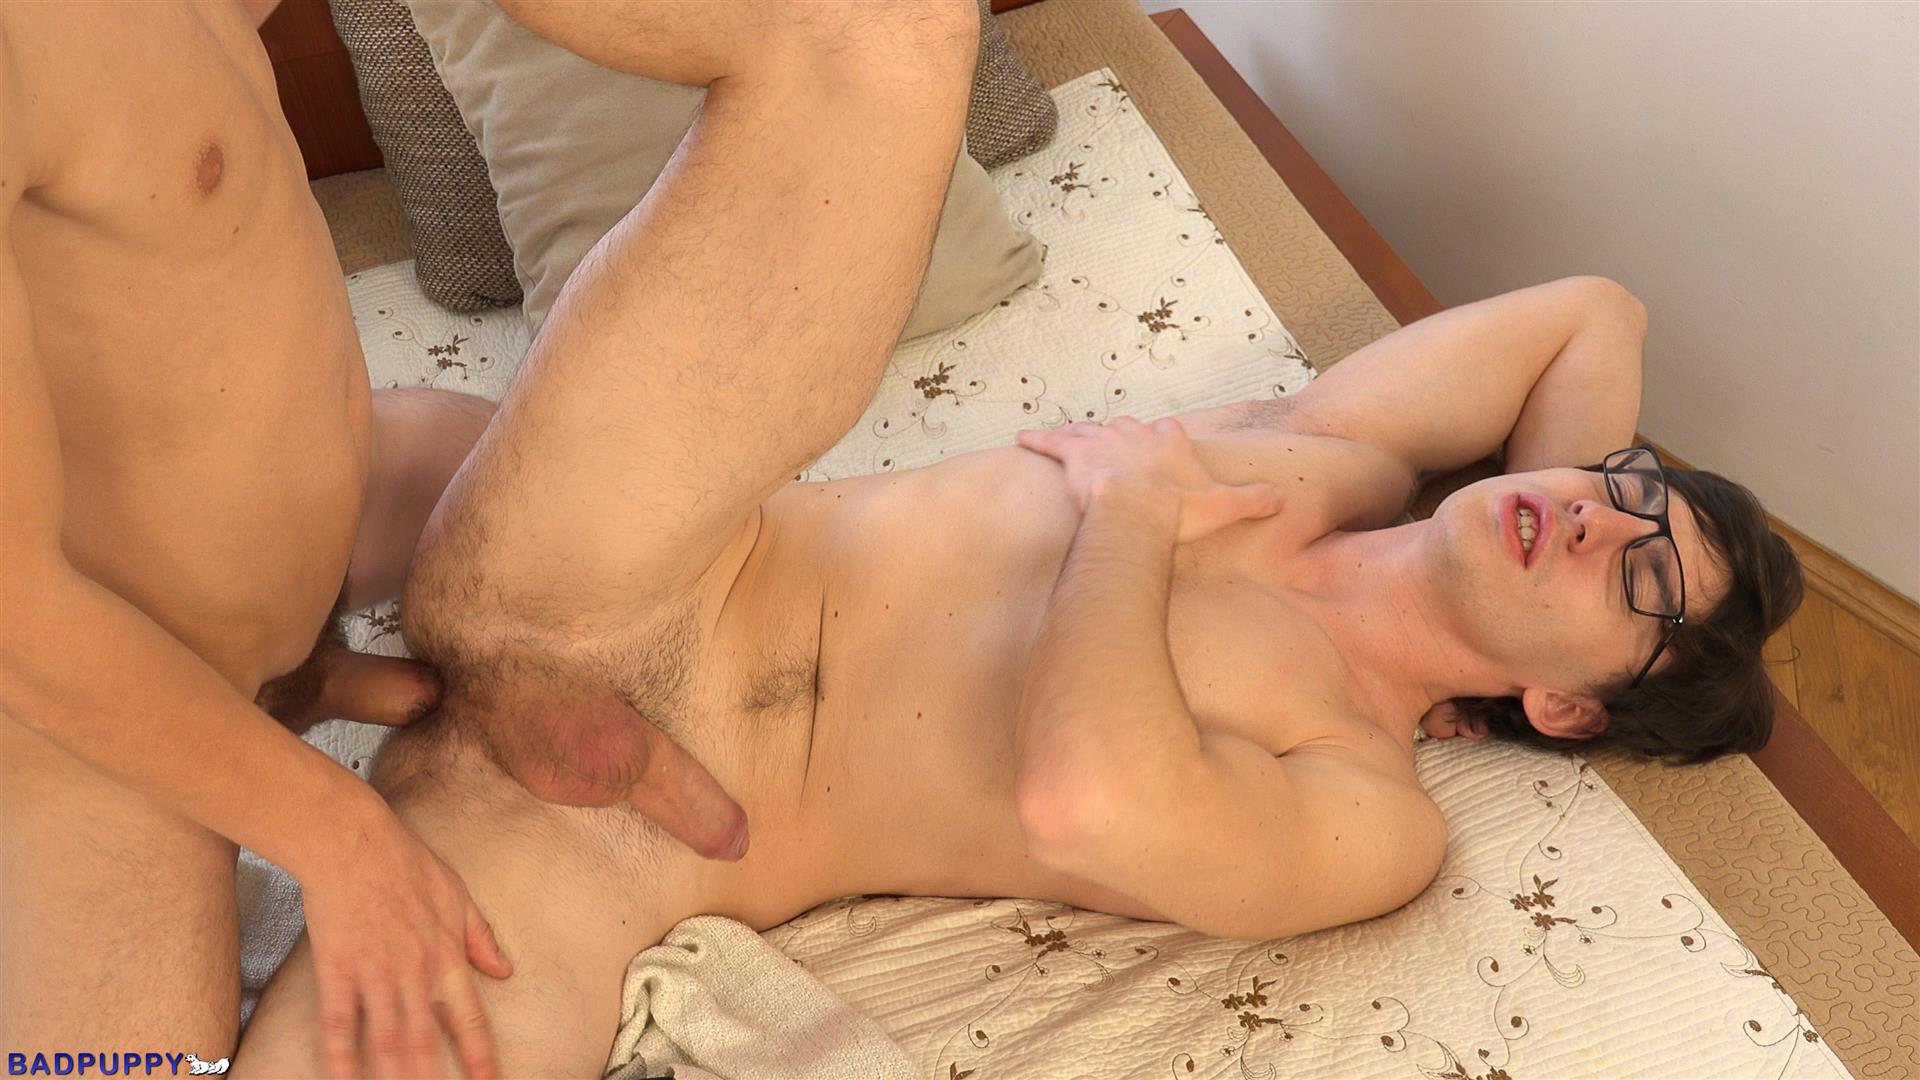 Badpuppy-Petr-Cisler-and-Roco-Rita-Hairy-Ass-Twinks-Bareback-Amateur-Gay-Porn-25 Nerdy Twink Gets Fucked With A Big Uncut Dick In His Hairy Ass